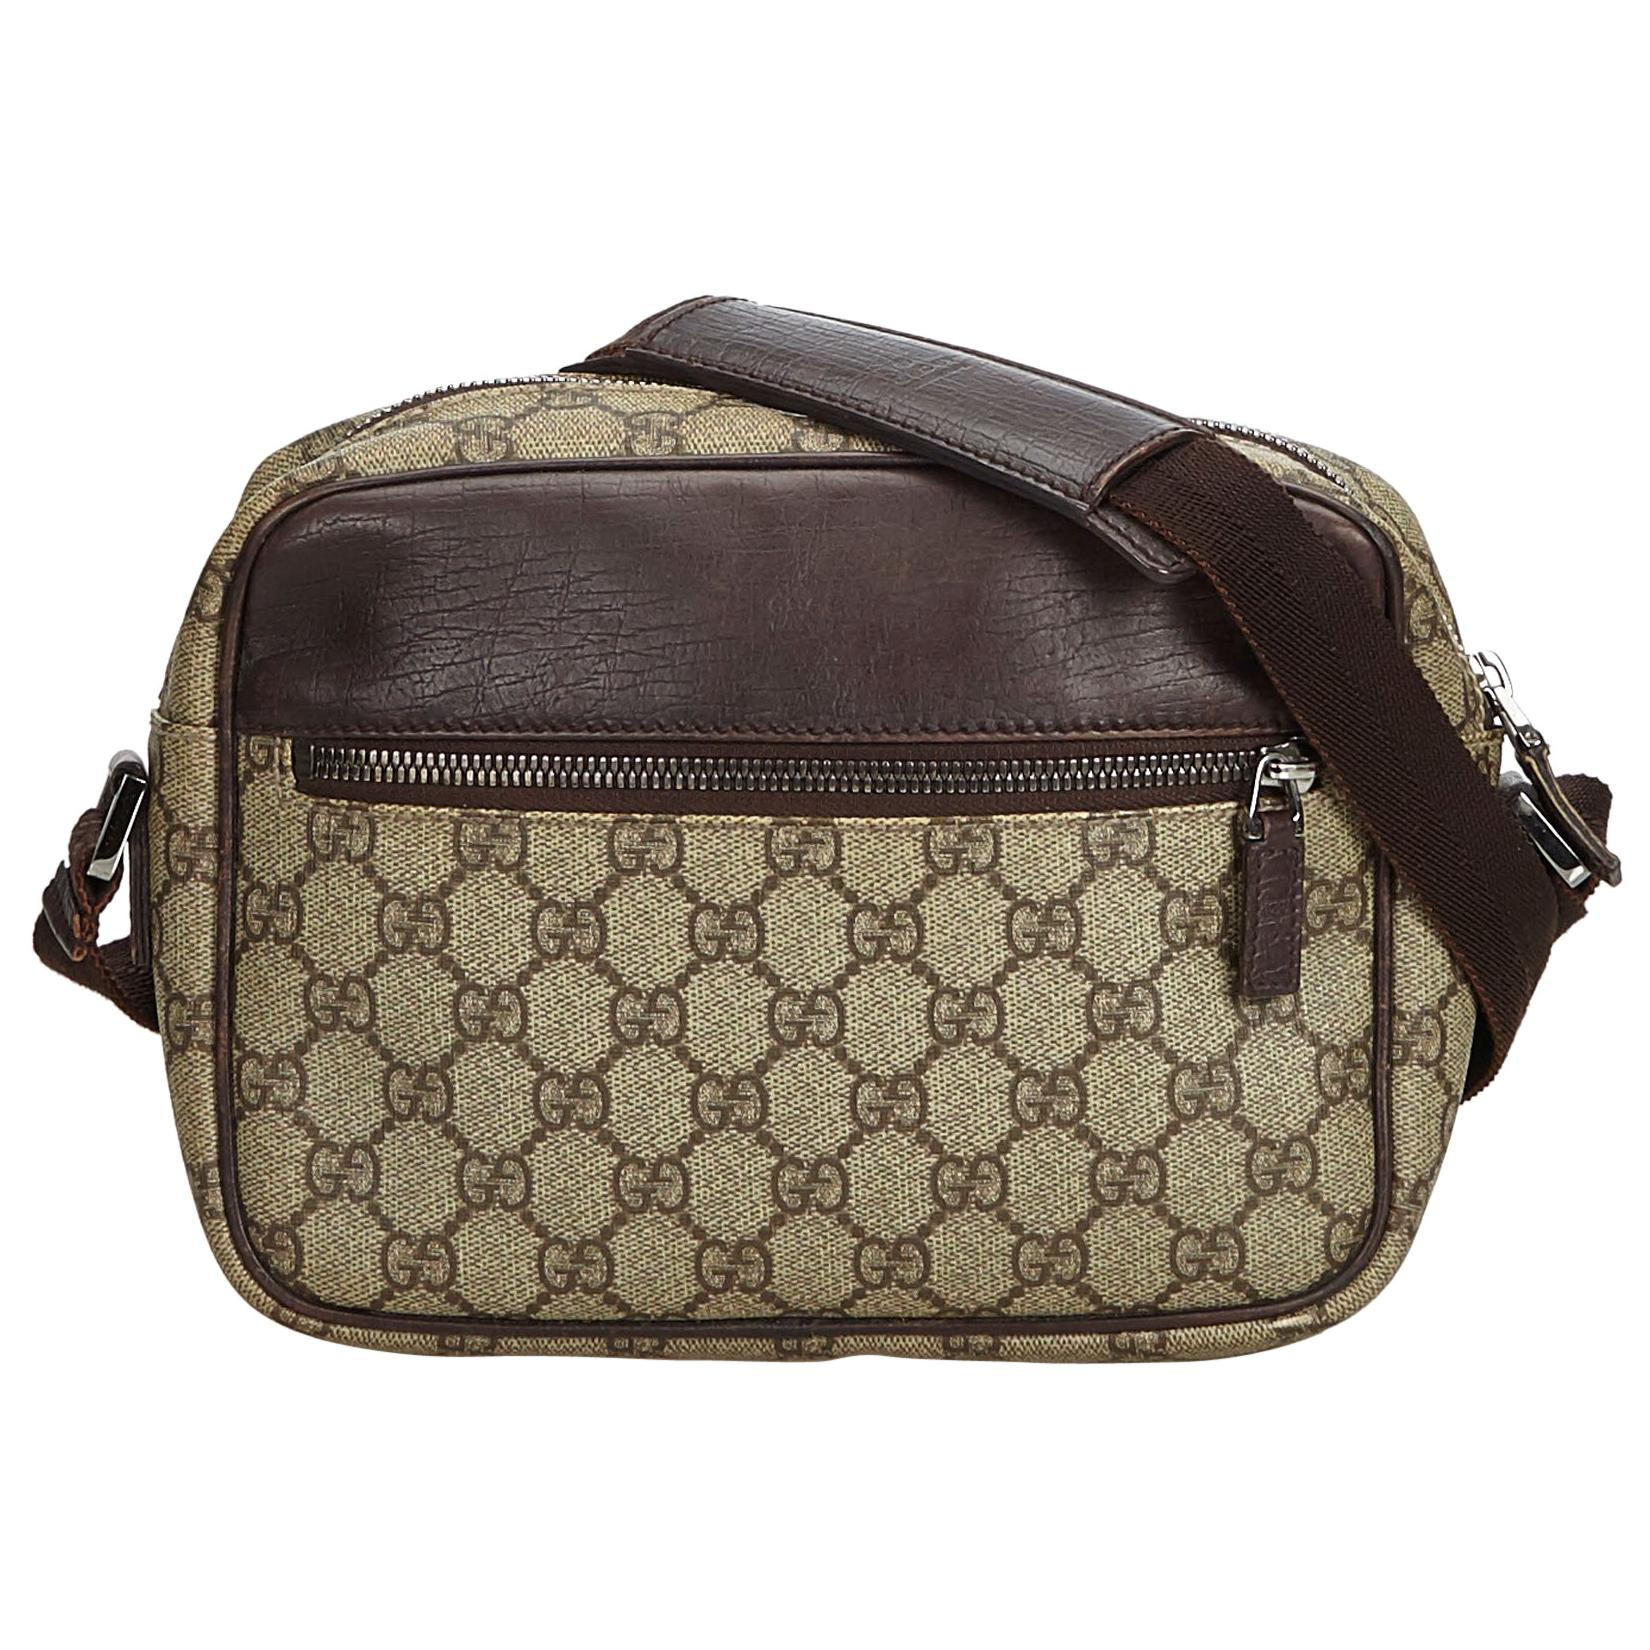 aec1ef7ecb4966 Vintage Gucci Handbags and Purses - 2,467 For Sale at 1stdibs - Page 6